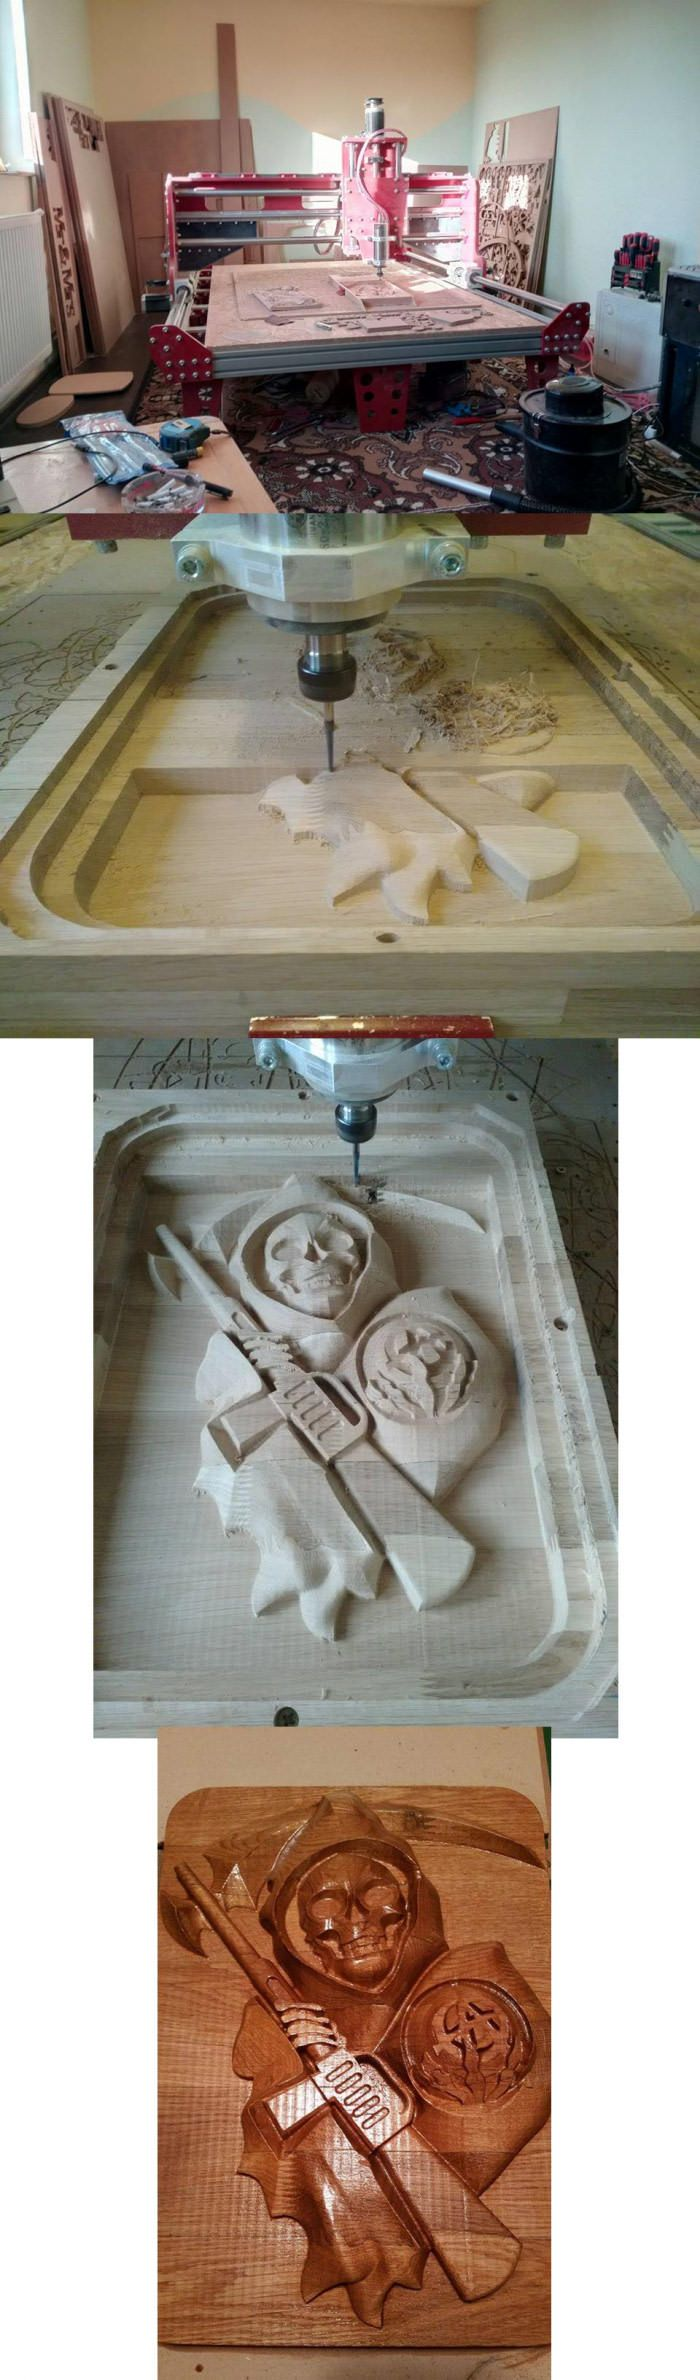 cnc machinist resume%0A Homemade cnc router  more from my work  enjoy